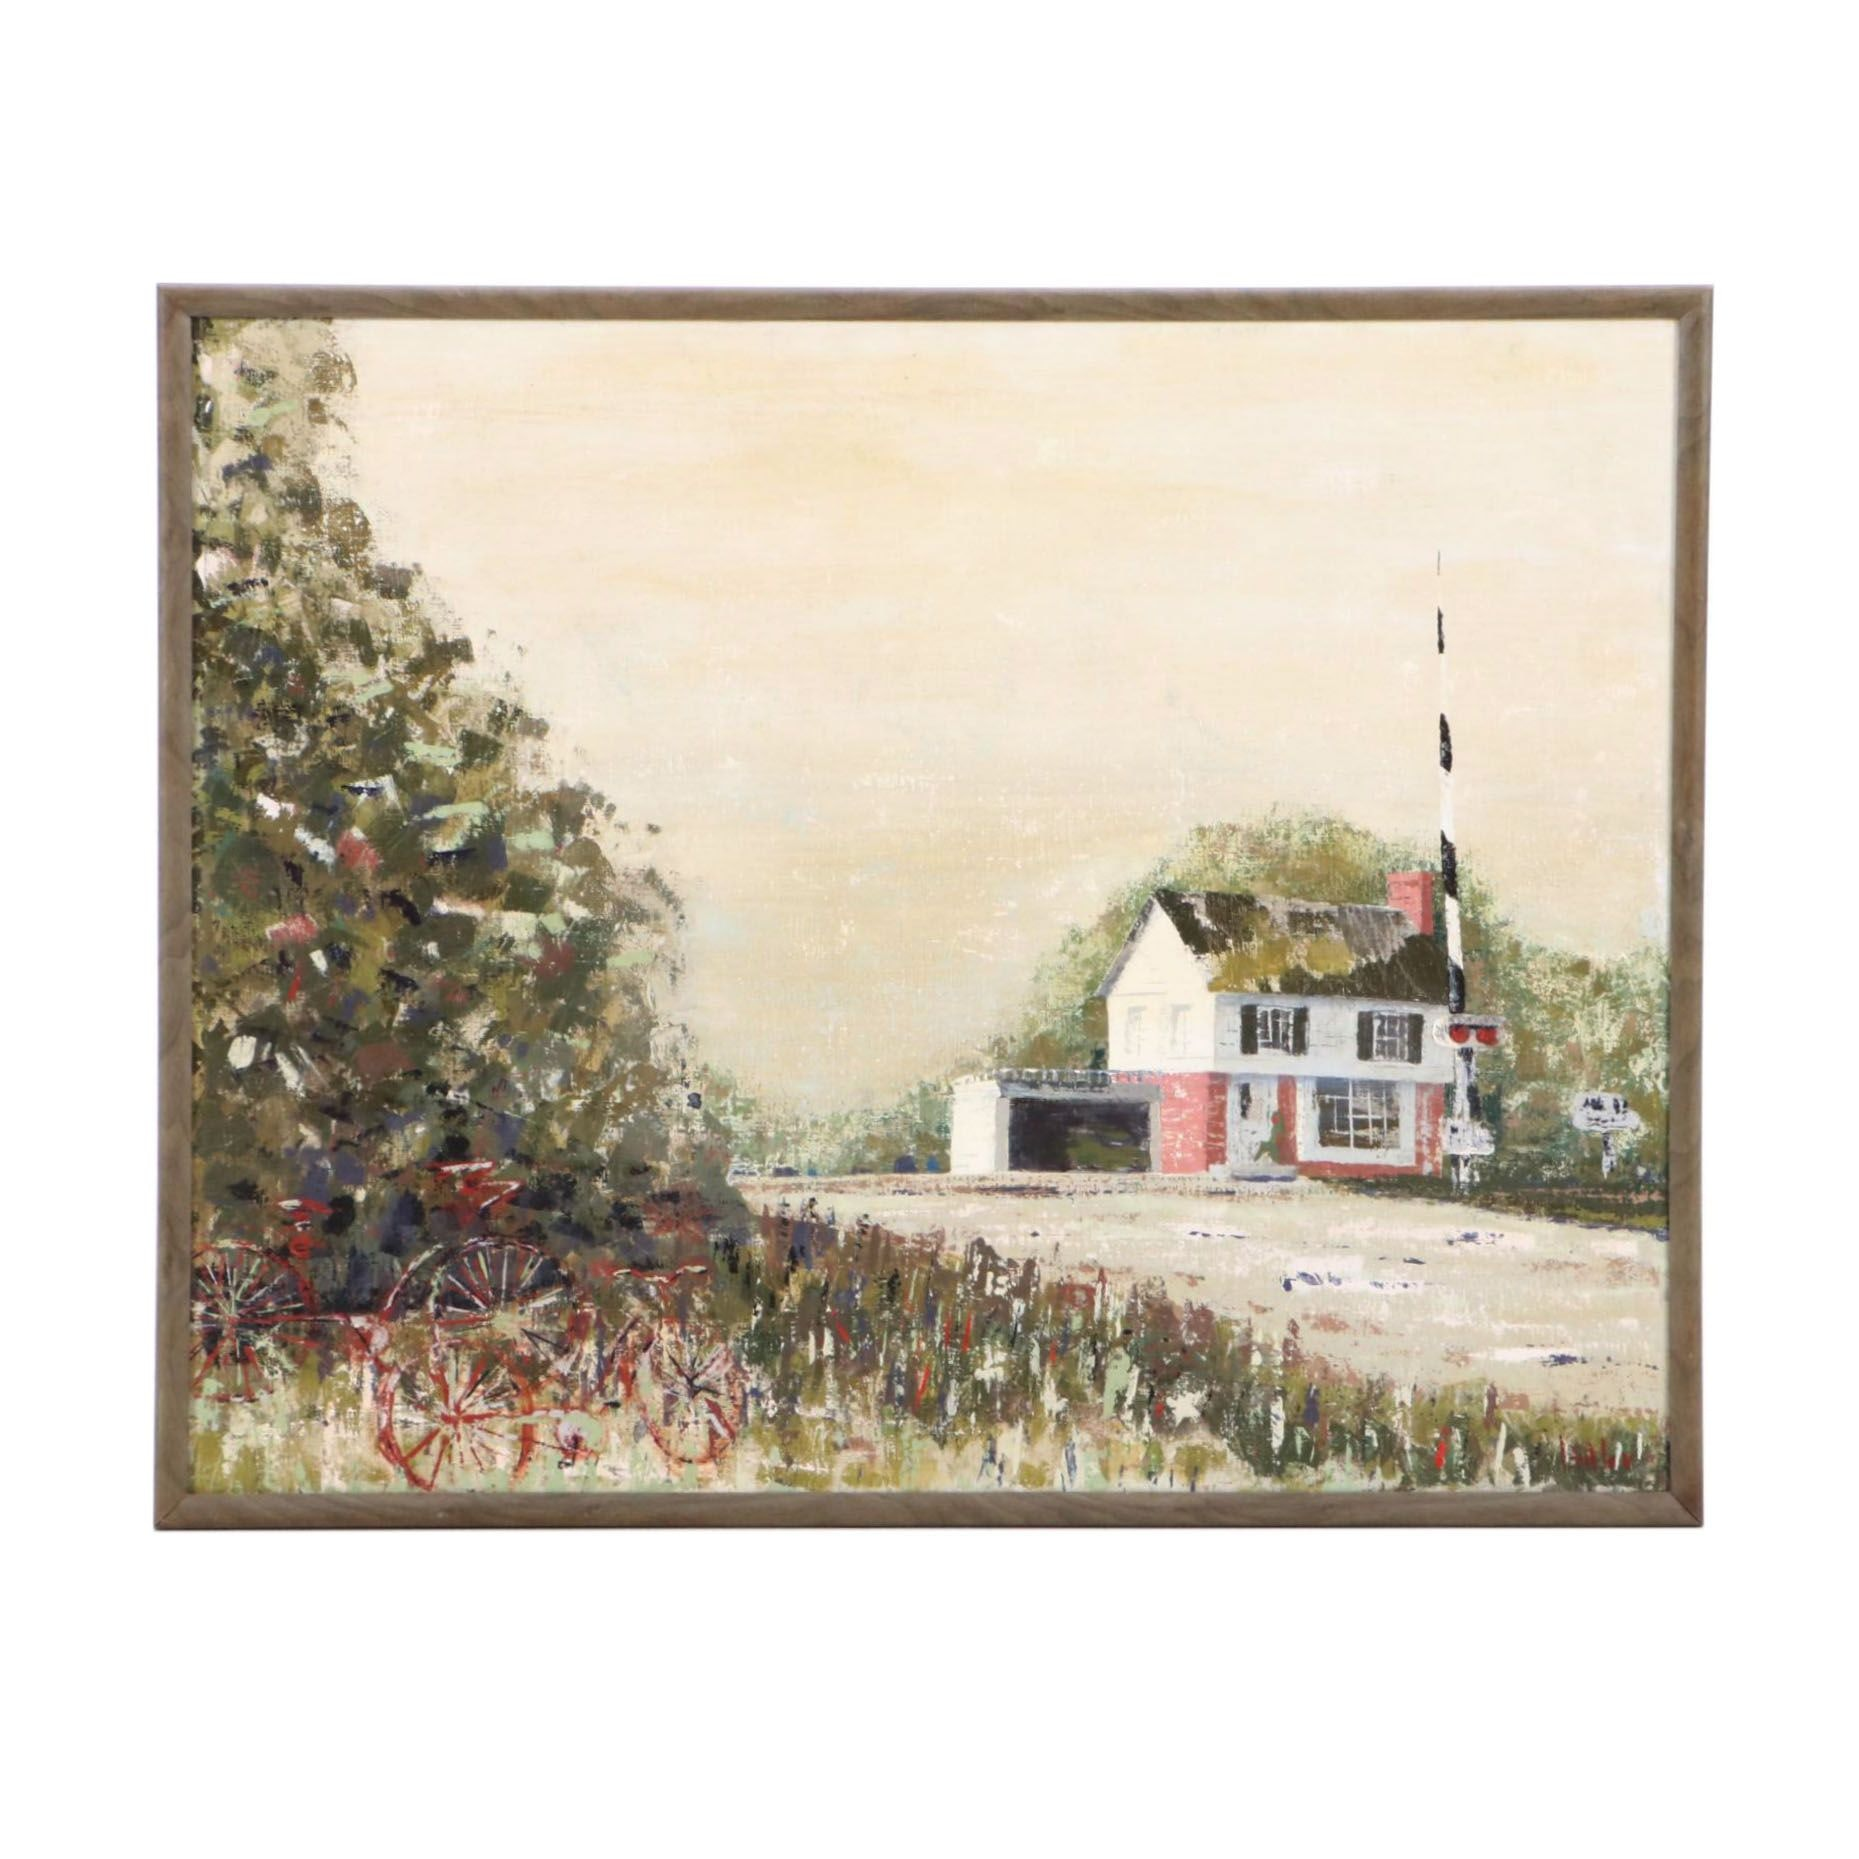 Butler Oil Painting of House Near Railroad Tracks